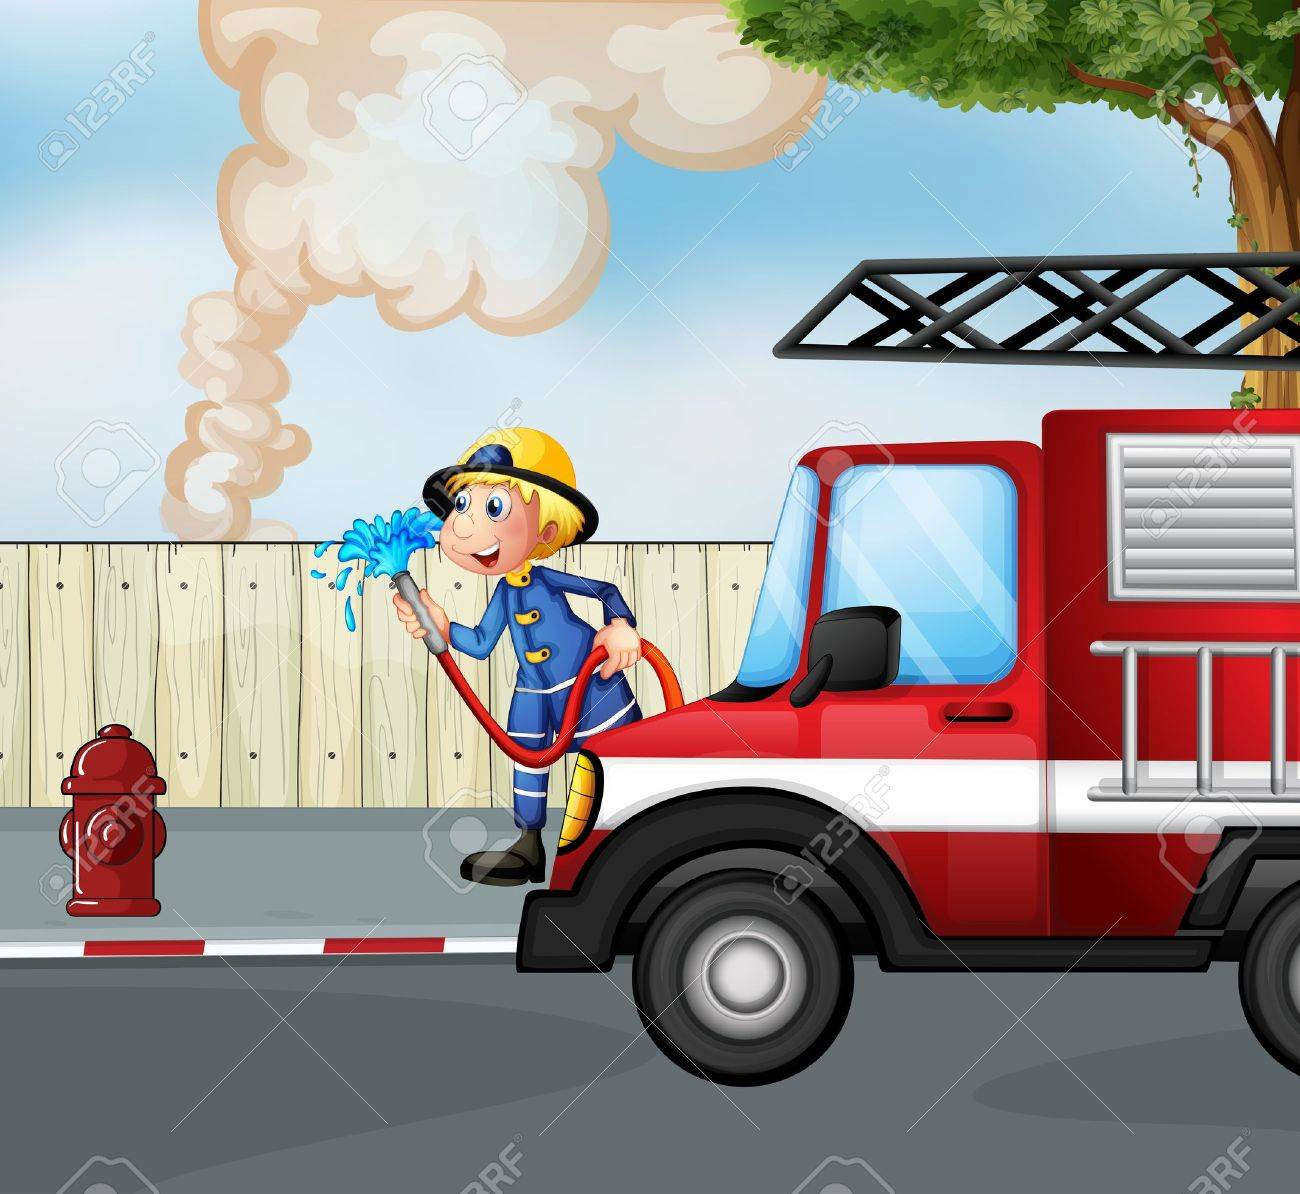 Illustration of a fireman rescuing a fire near the street Stock Vector - 18005014